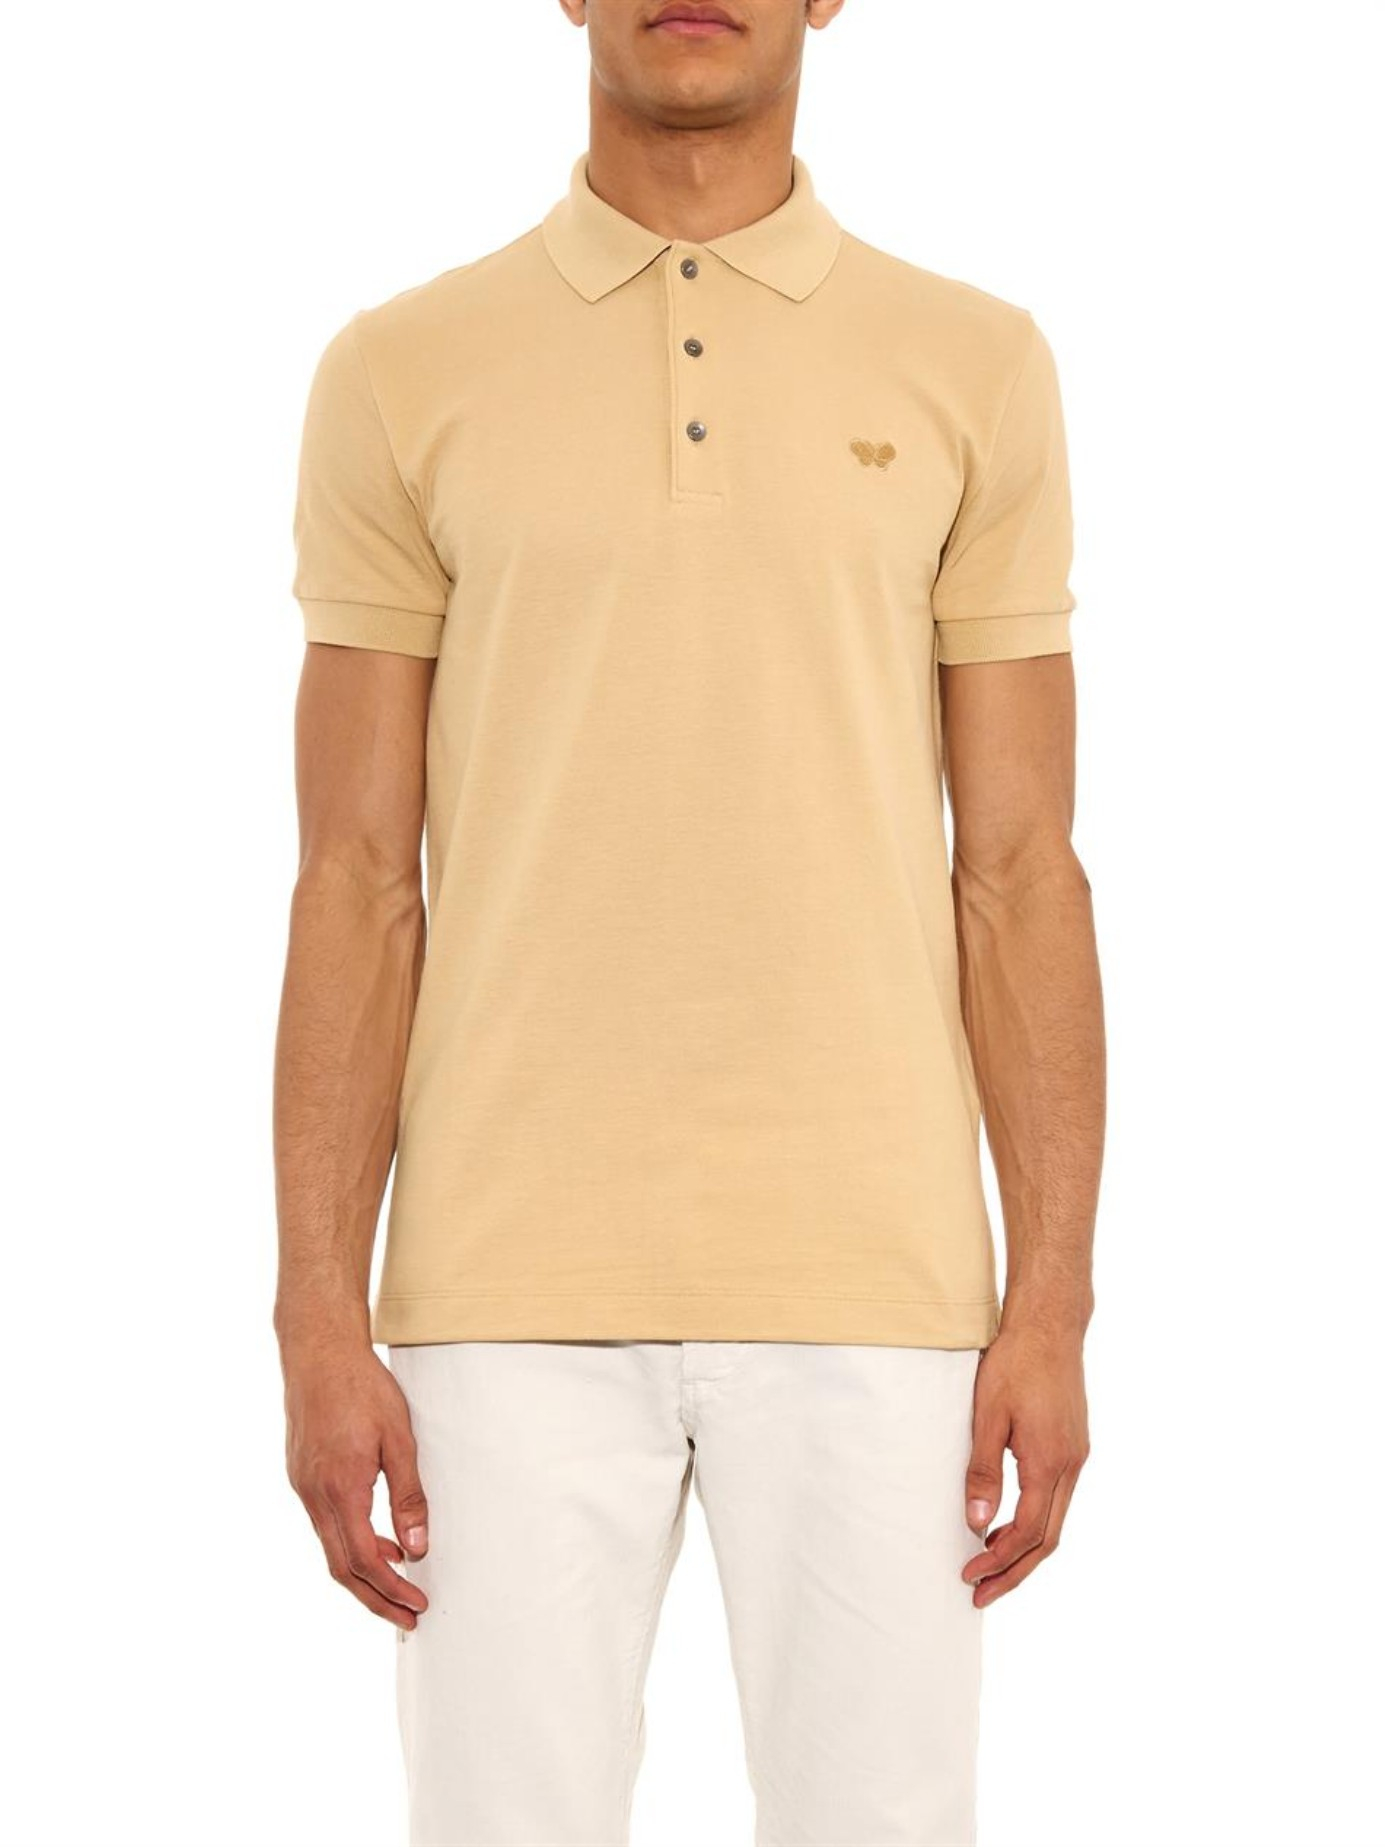 Lyst bottega veneta cotton piqu polo shirt in natural for Bottega veneta t shirt